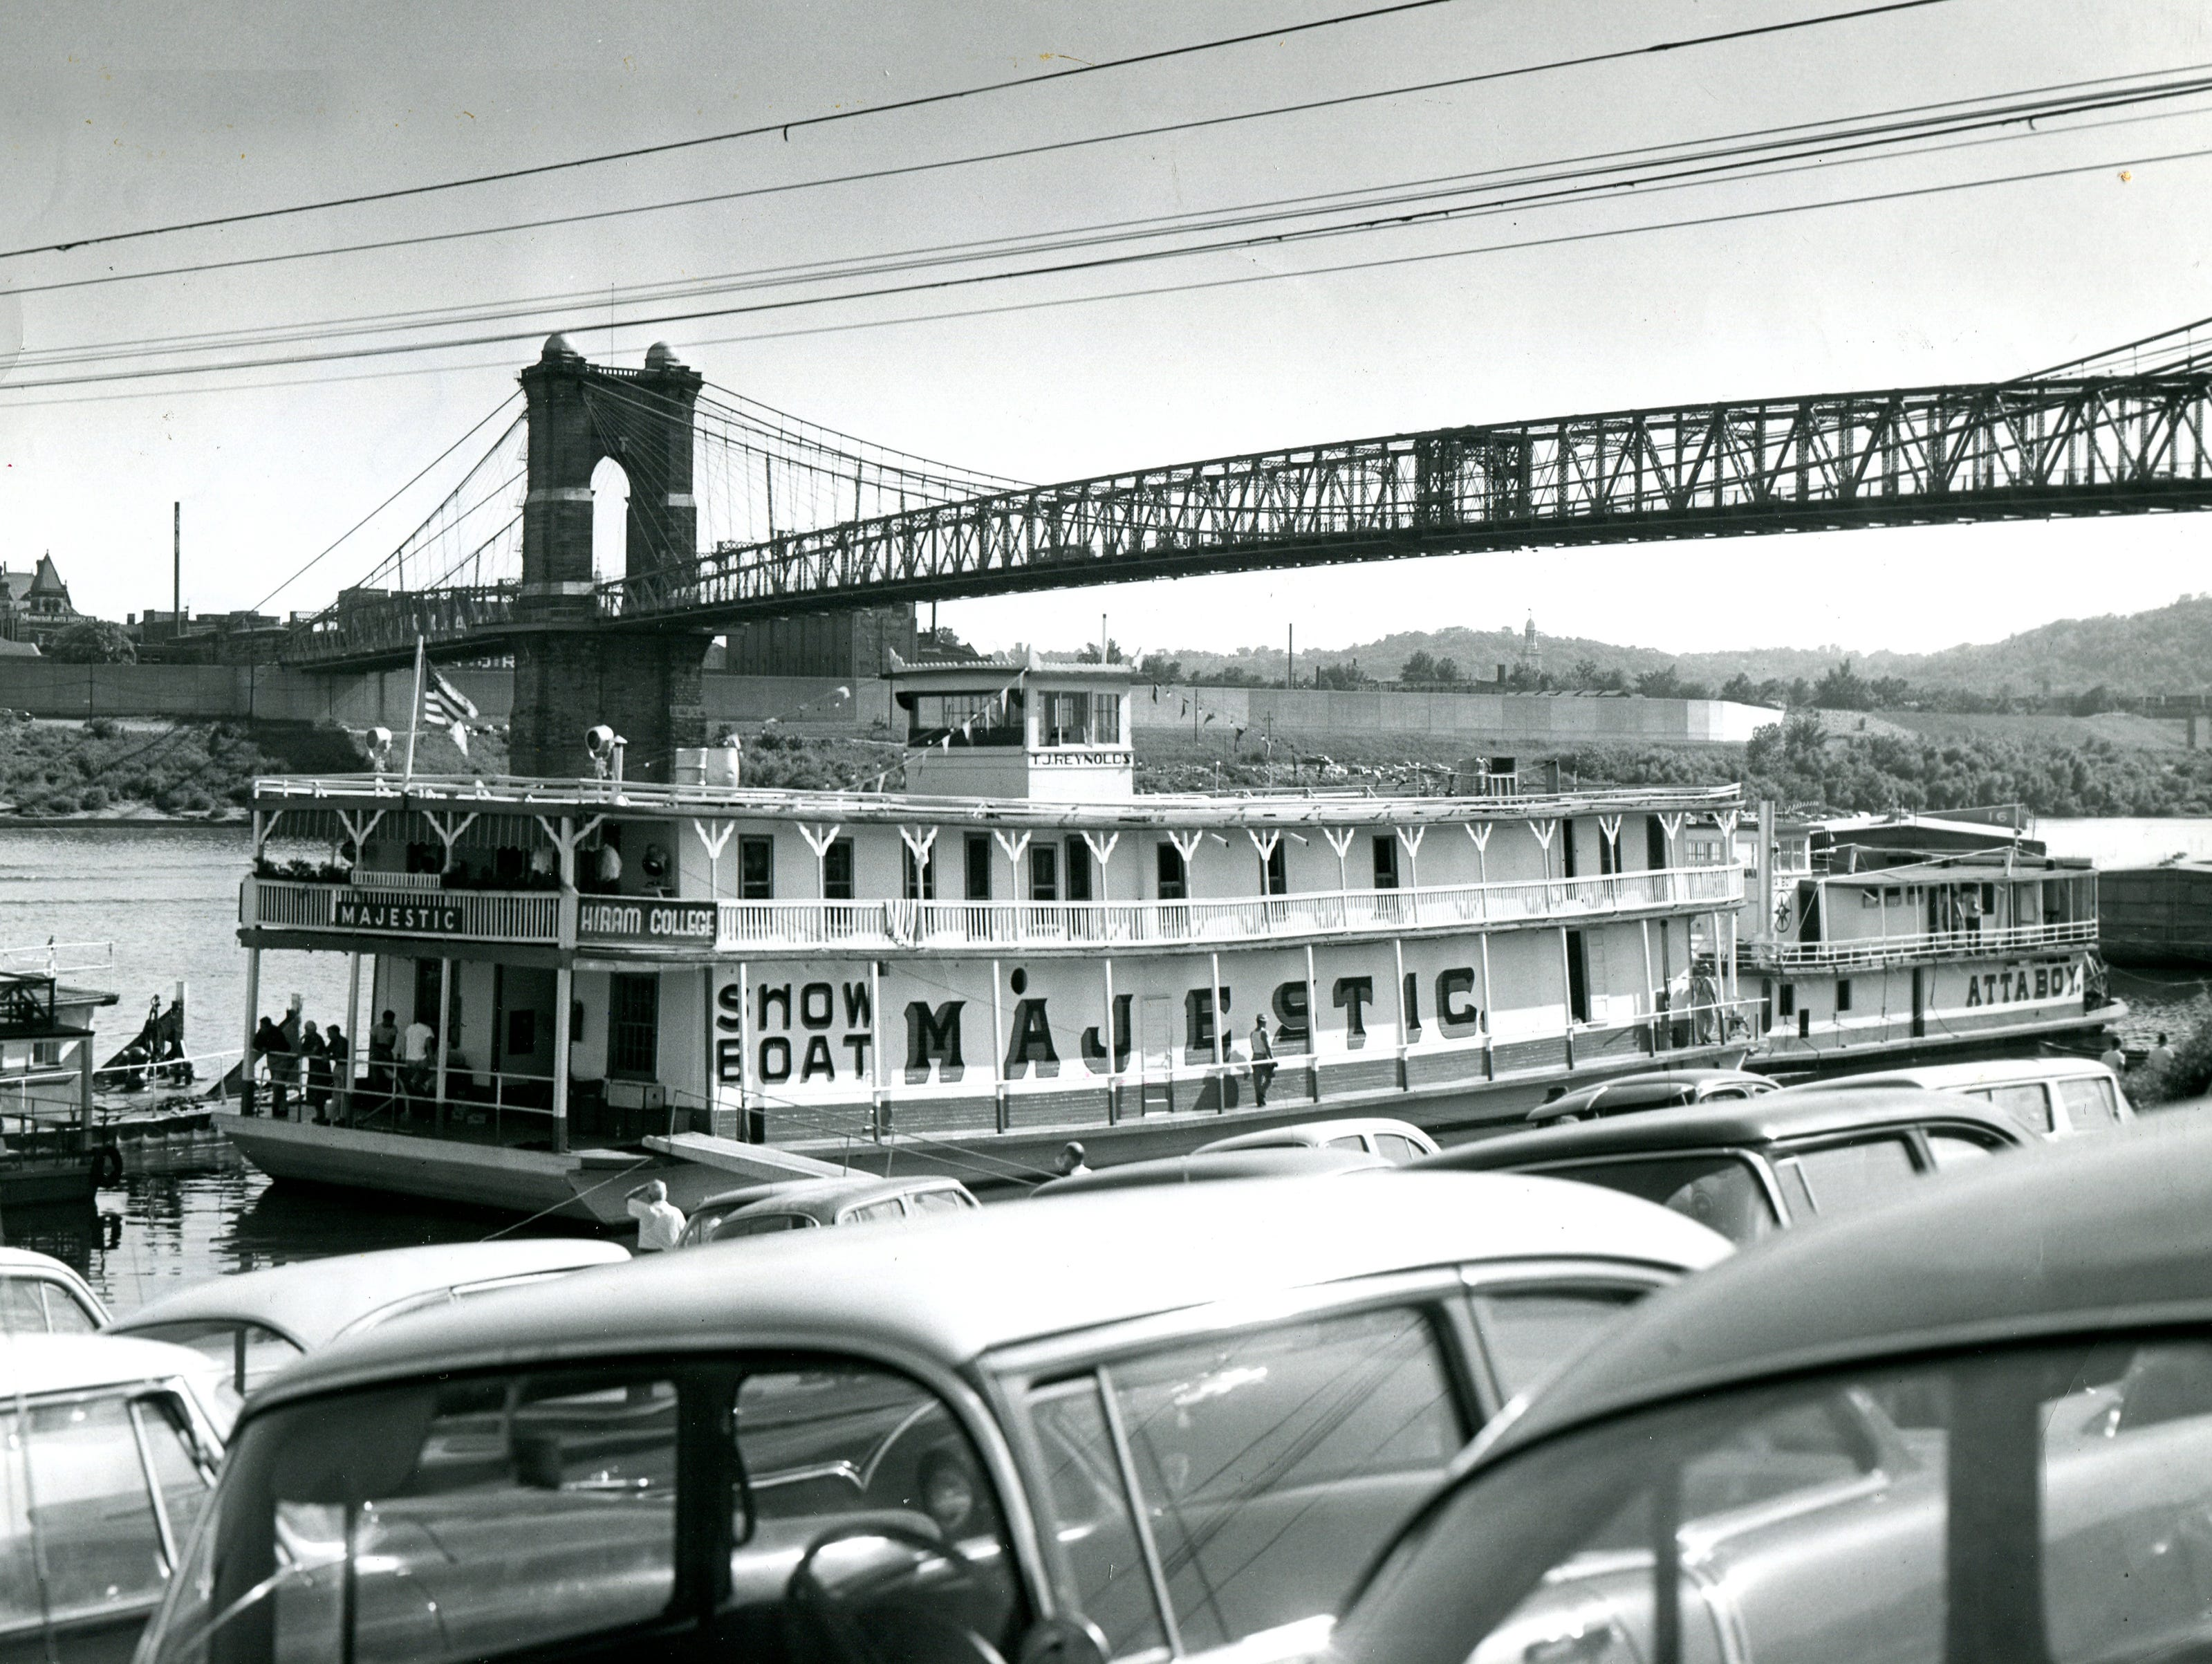 The Showboat Majestic docked at the Cincinnati riverfront in 1957.